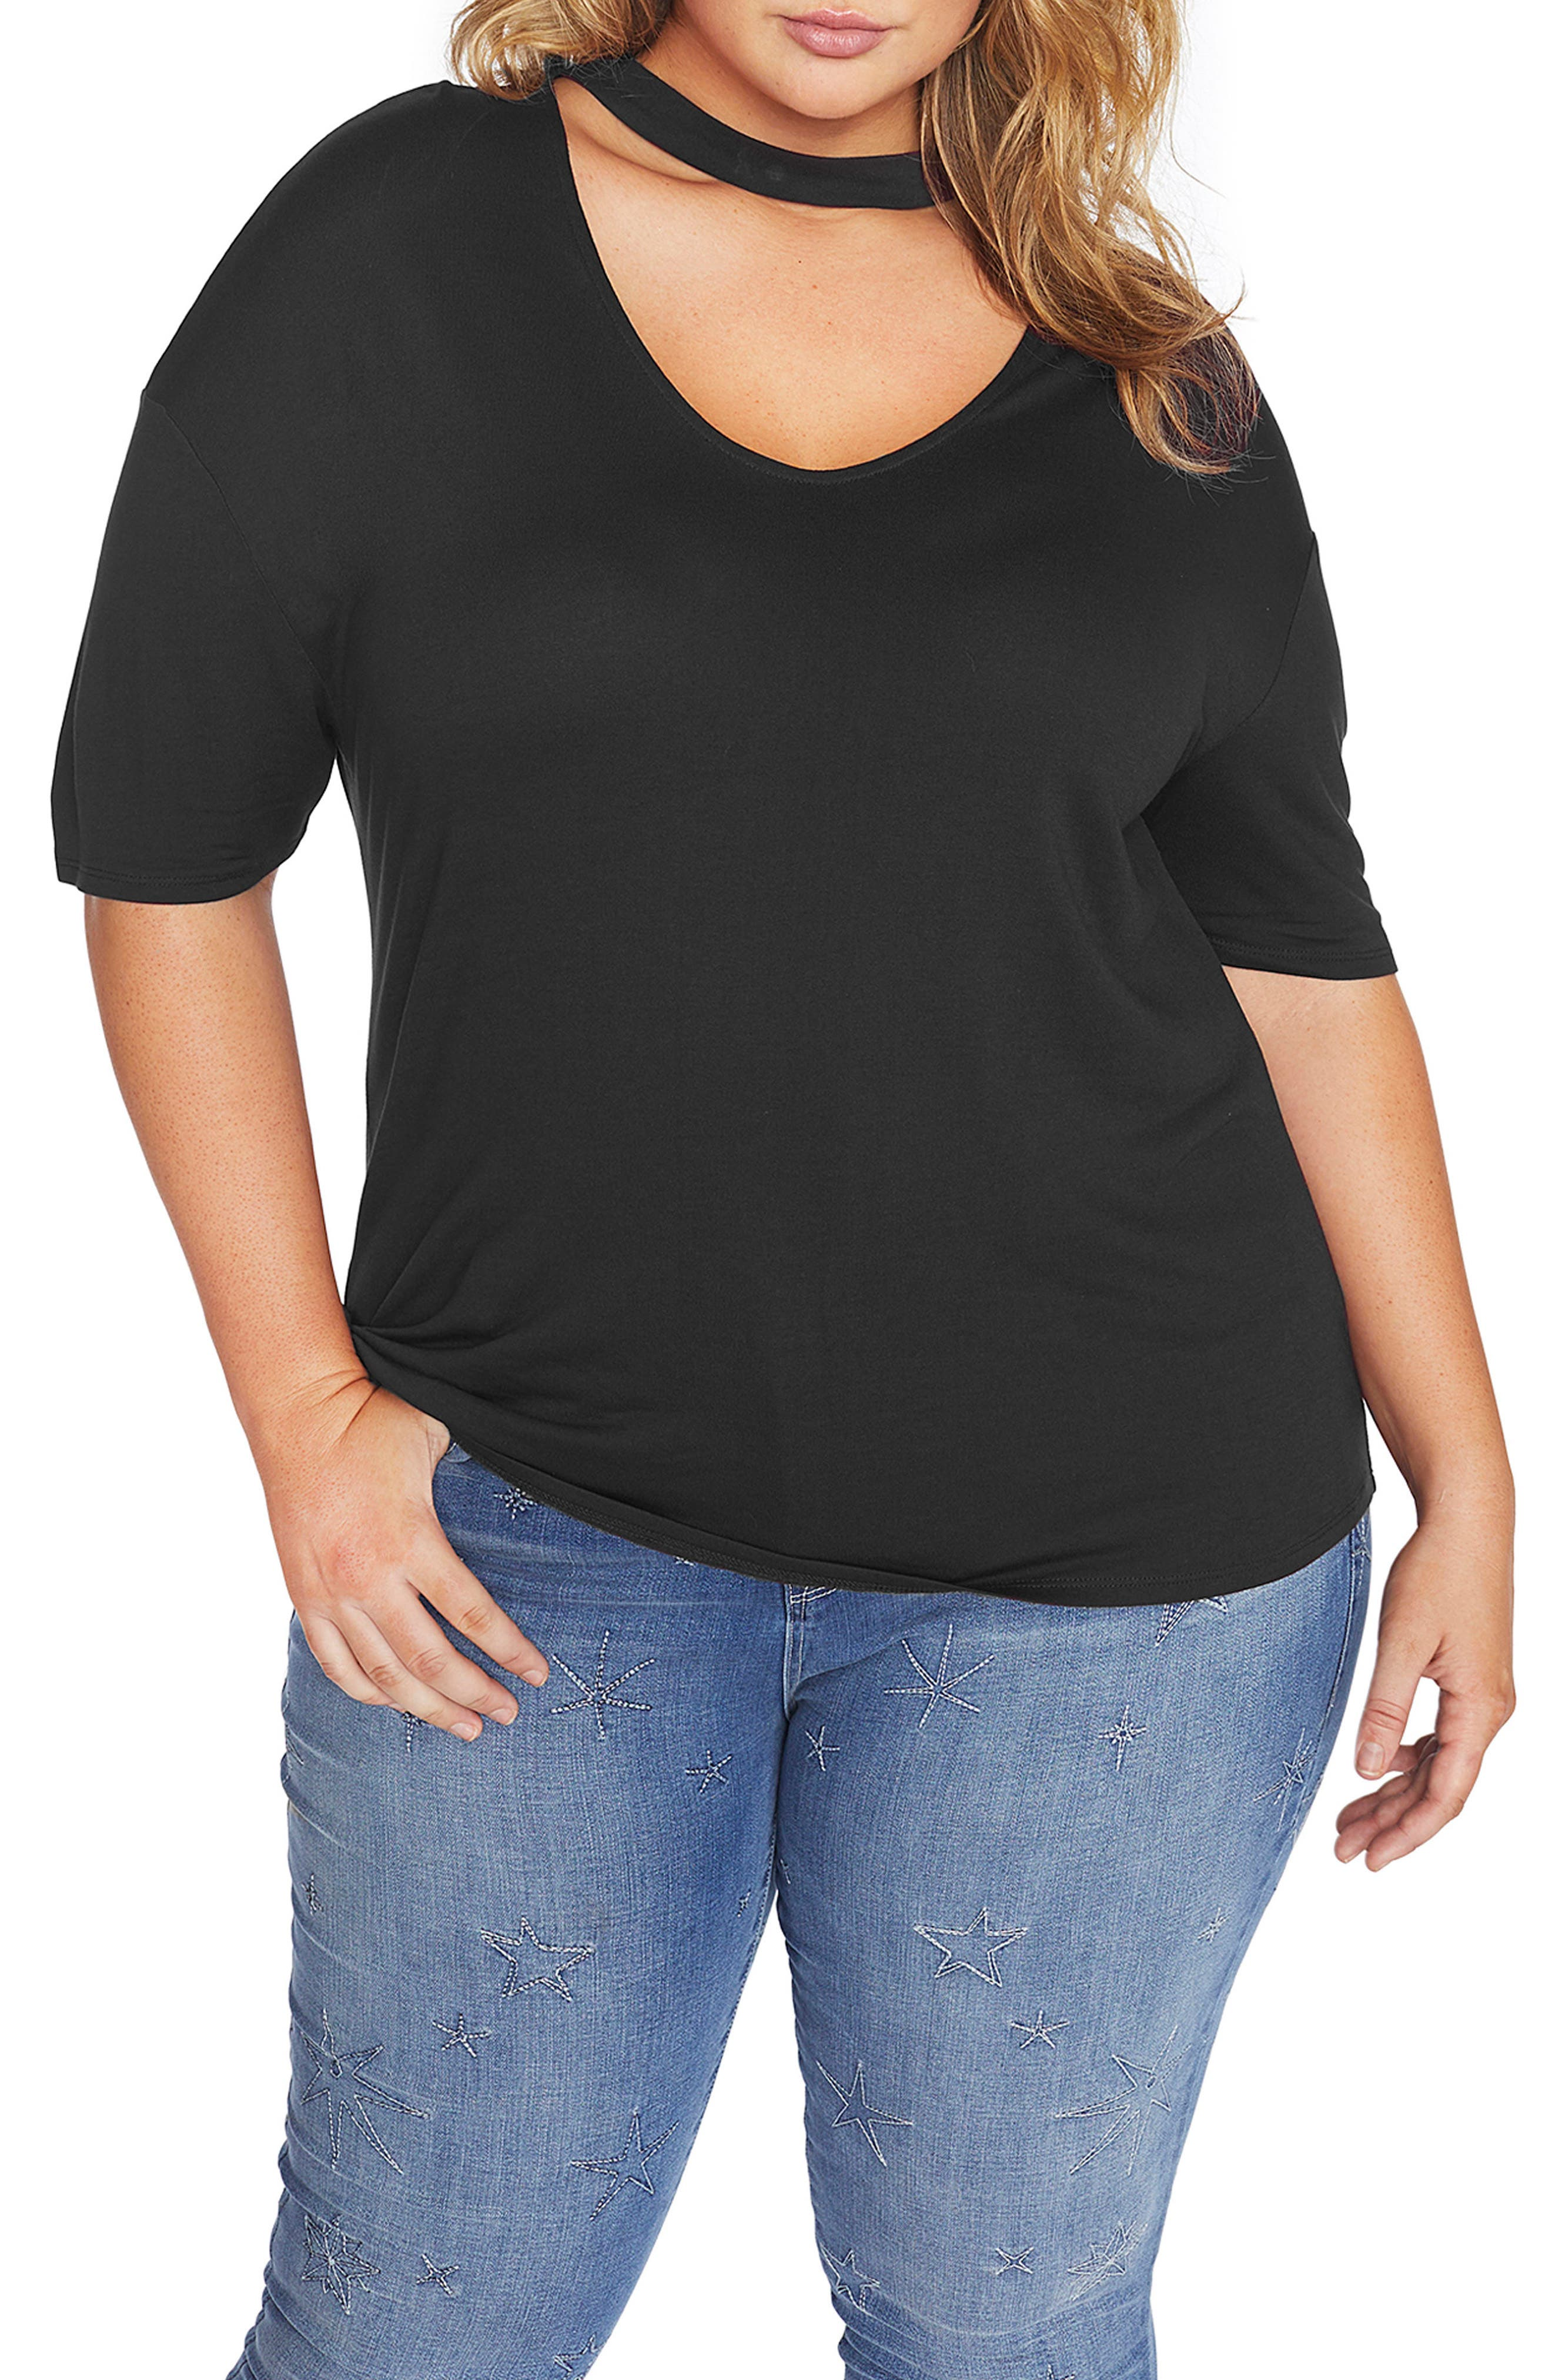 REBEL WILSON X ANGELS Knit Top with Neckband (Plus Size)